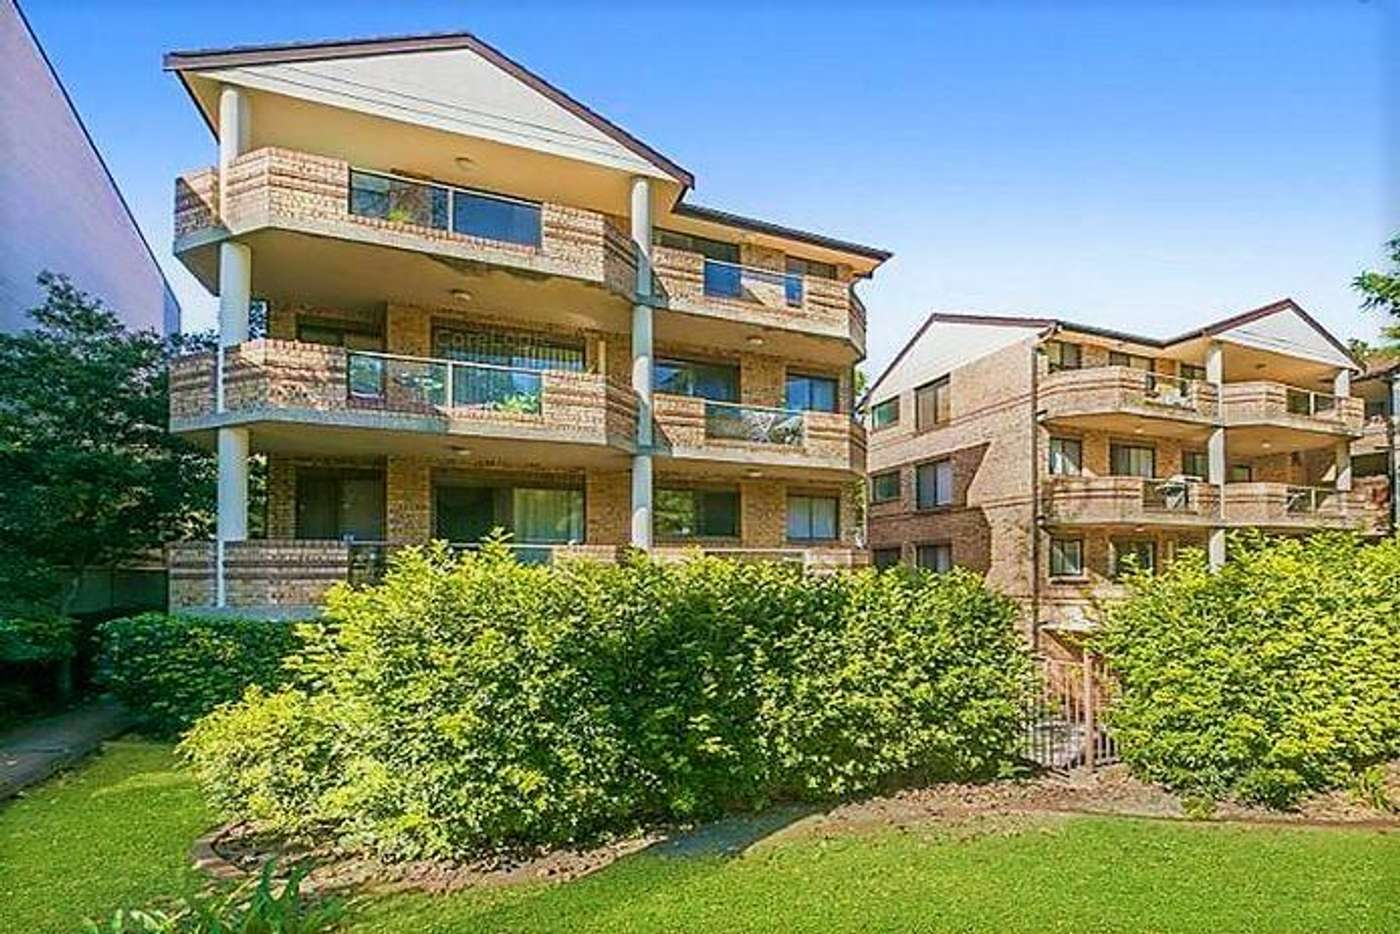 Main view of Homely apartment listing, 15/26 Pennant HIlls Road, North Parramatta NSW 2151